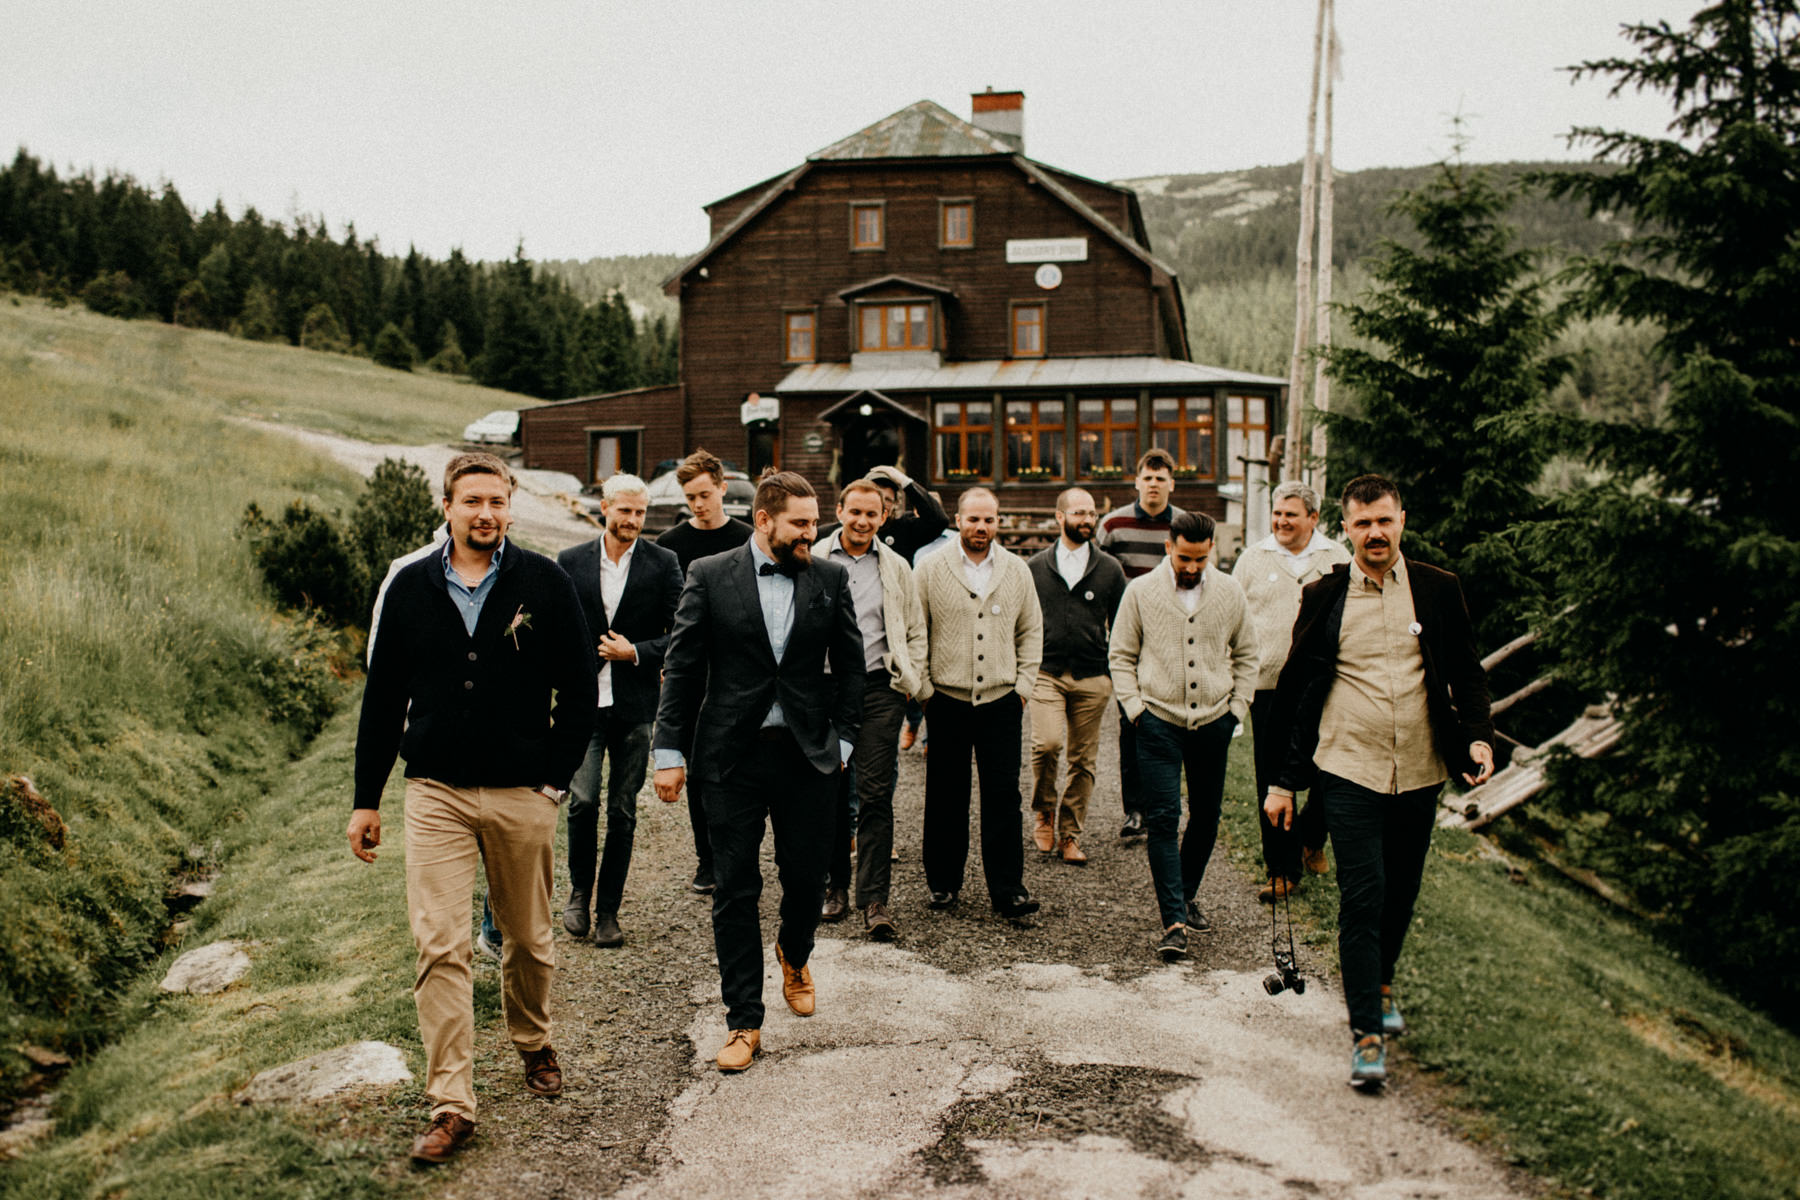 groom with his groomsmen walking to their secret spot